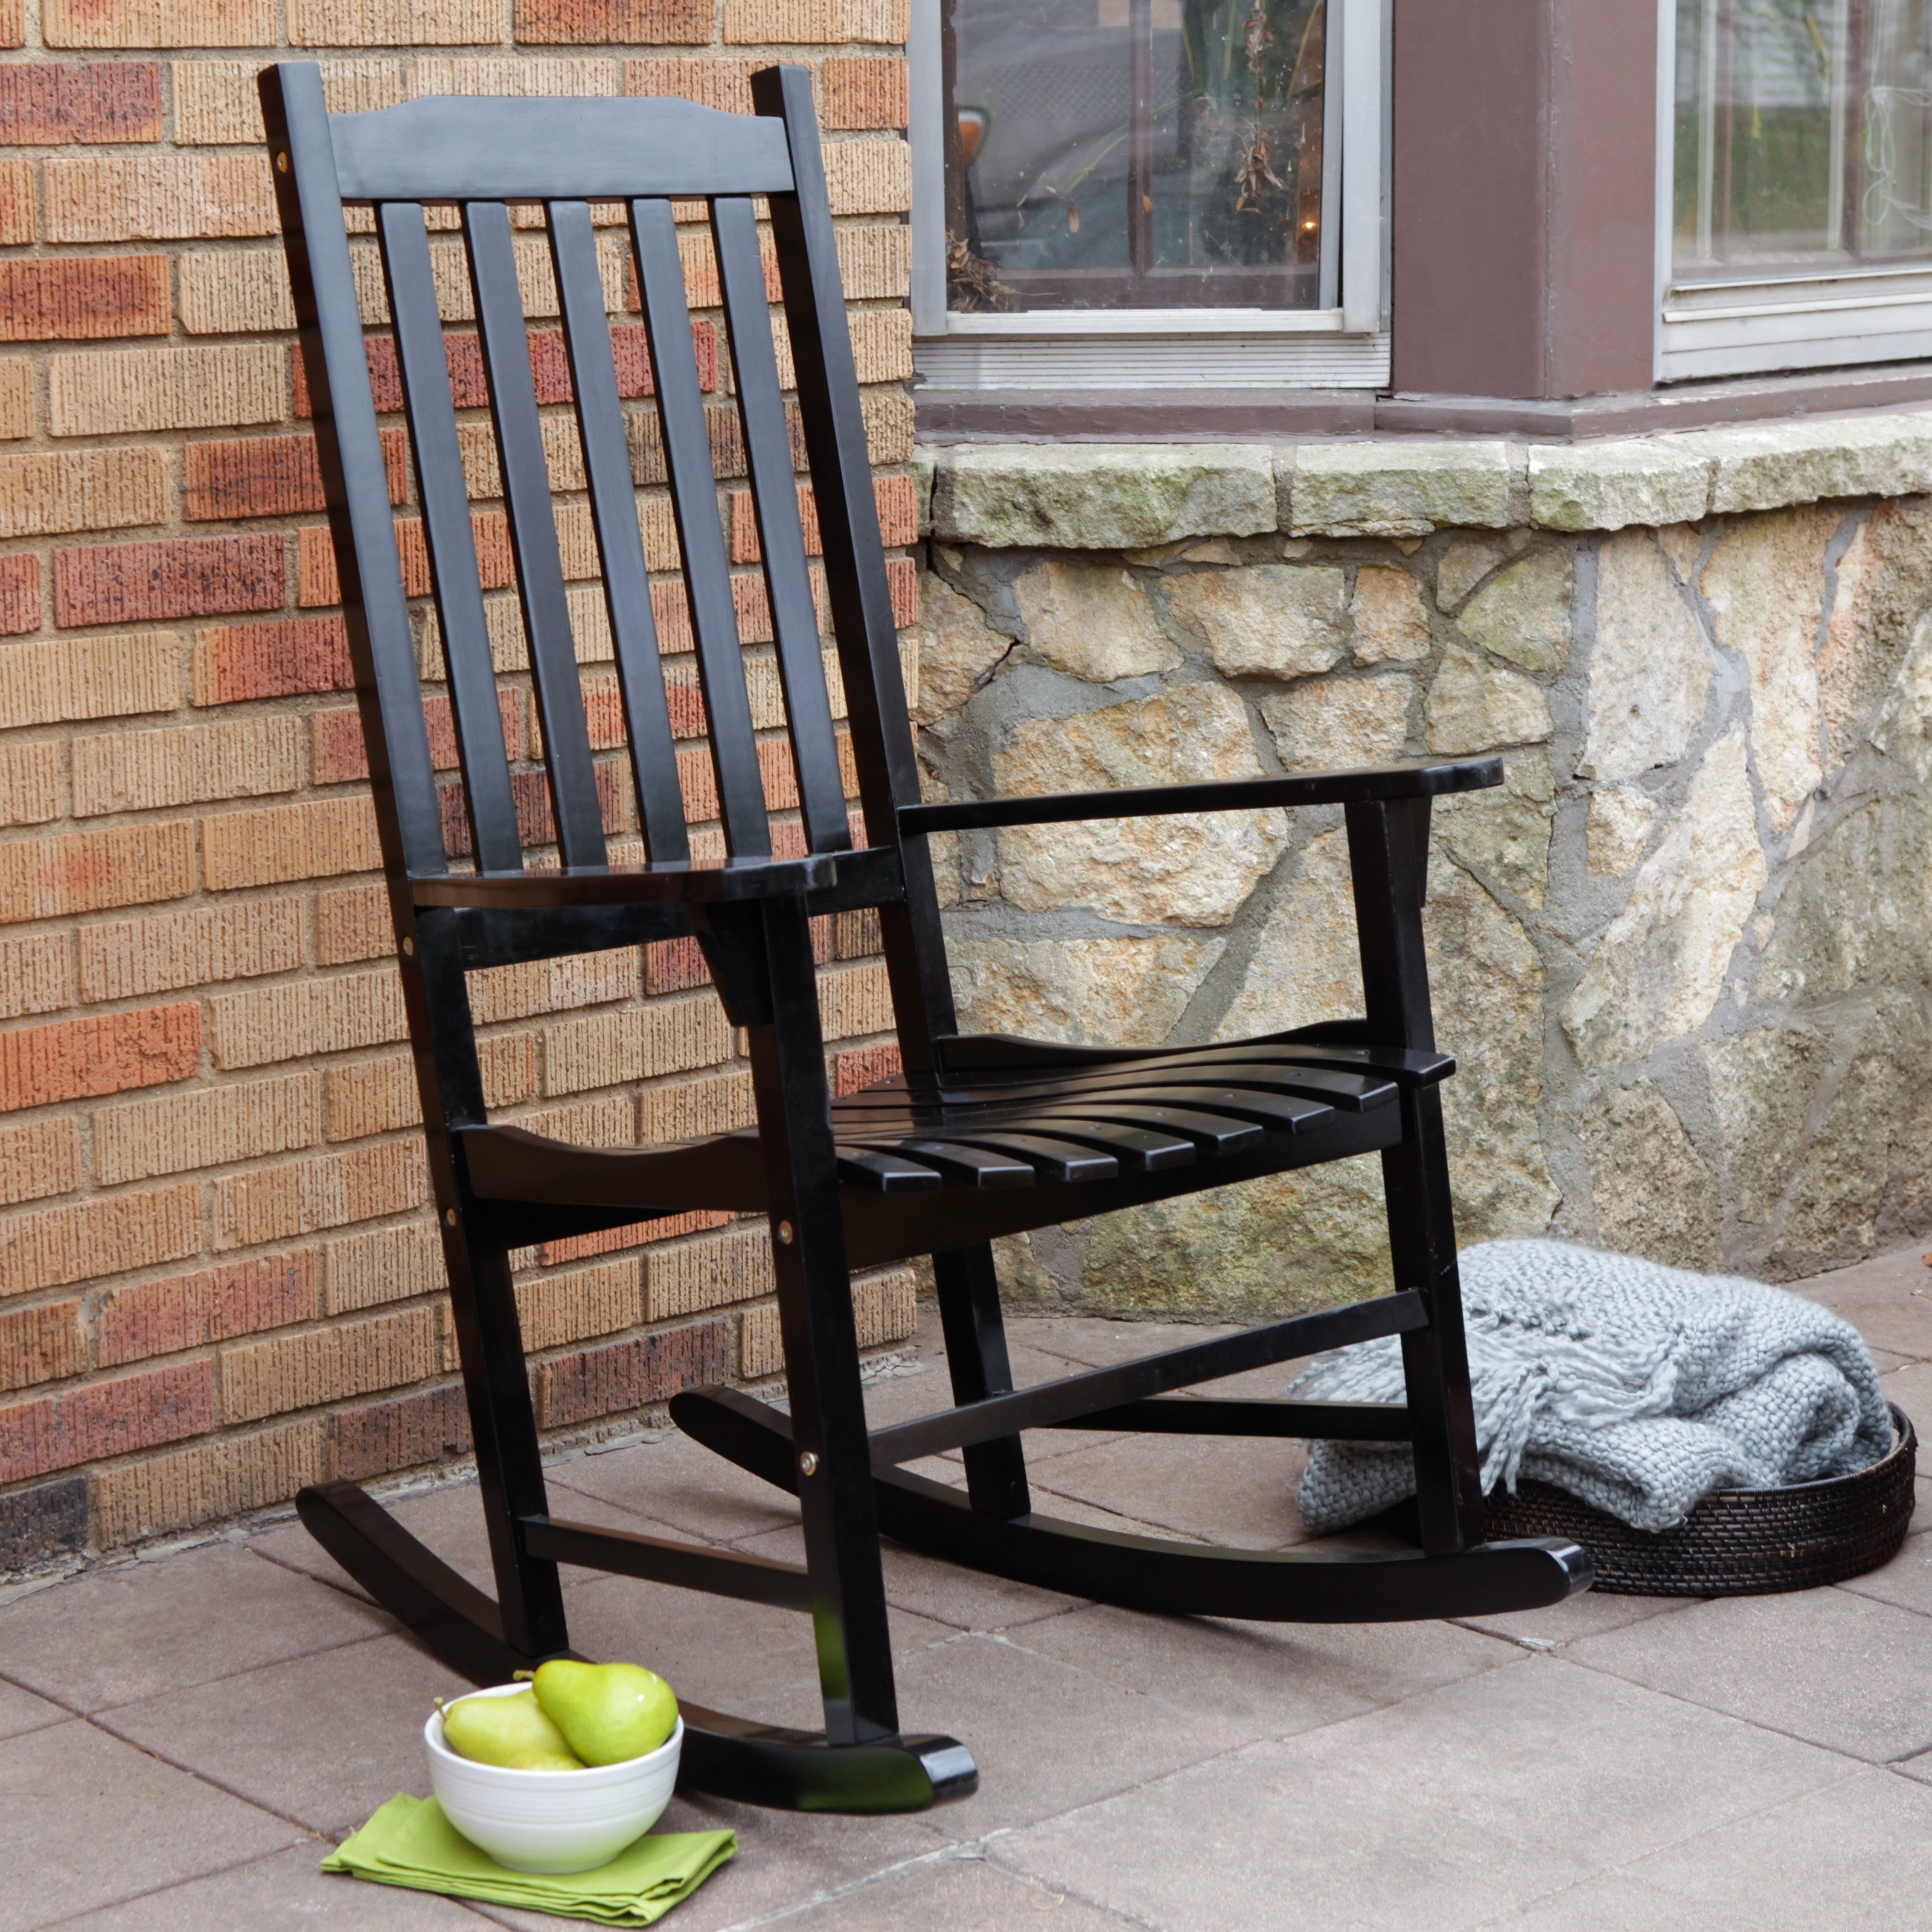 Popularity Gaining Outdoor Rocking Chairs – Carehomedecor Pertaining To Most Recent Rocking Chairs For Porch (View 3 of 15)